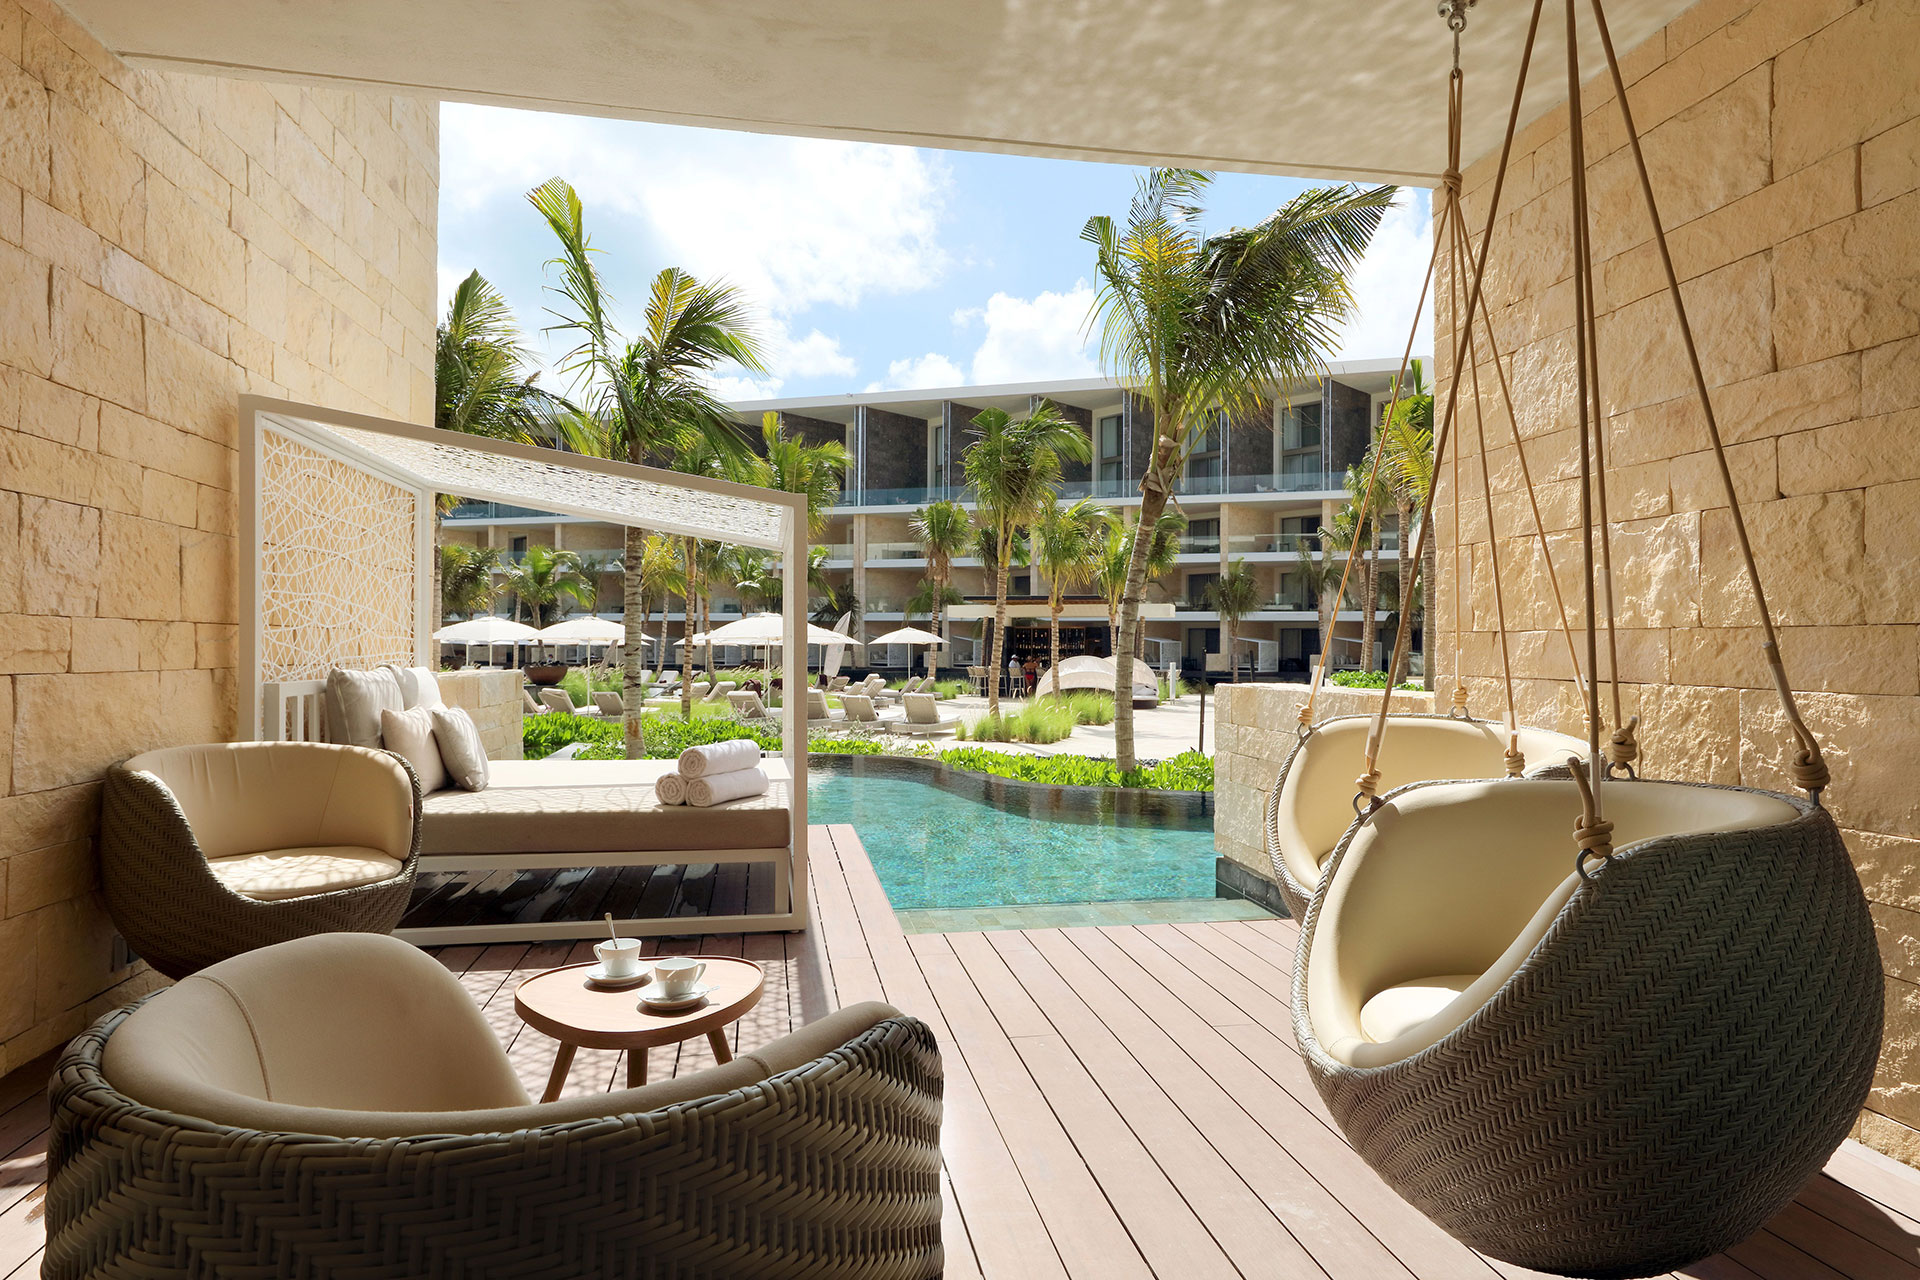 11 Best All Inclusive Resorts With Swim Up Rooms For